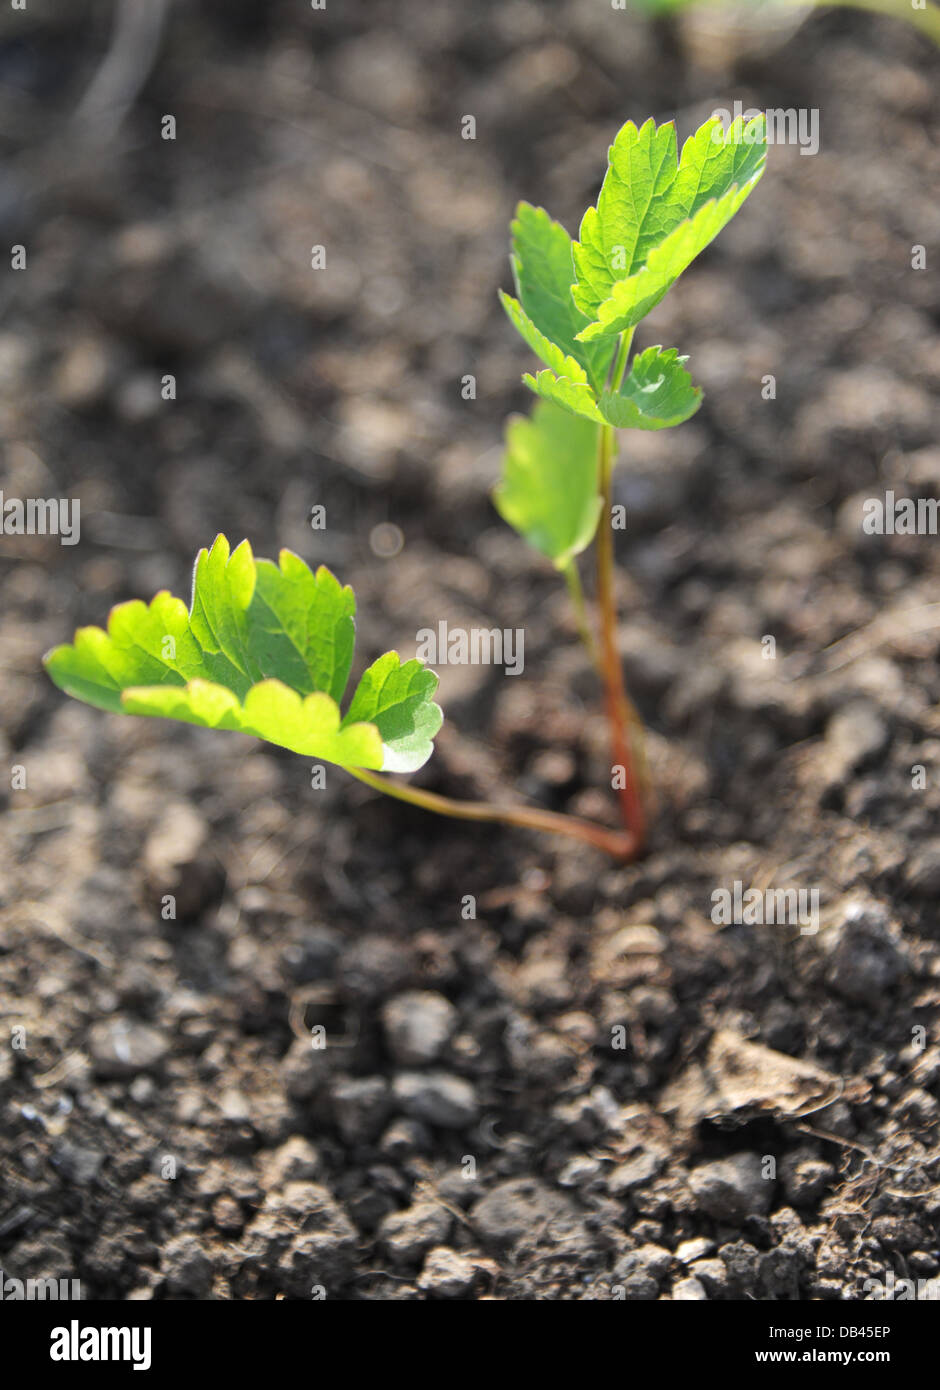 The leaves of a parsnip seedling glowing in the morning sunshine. - Stock Image